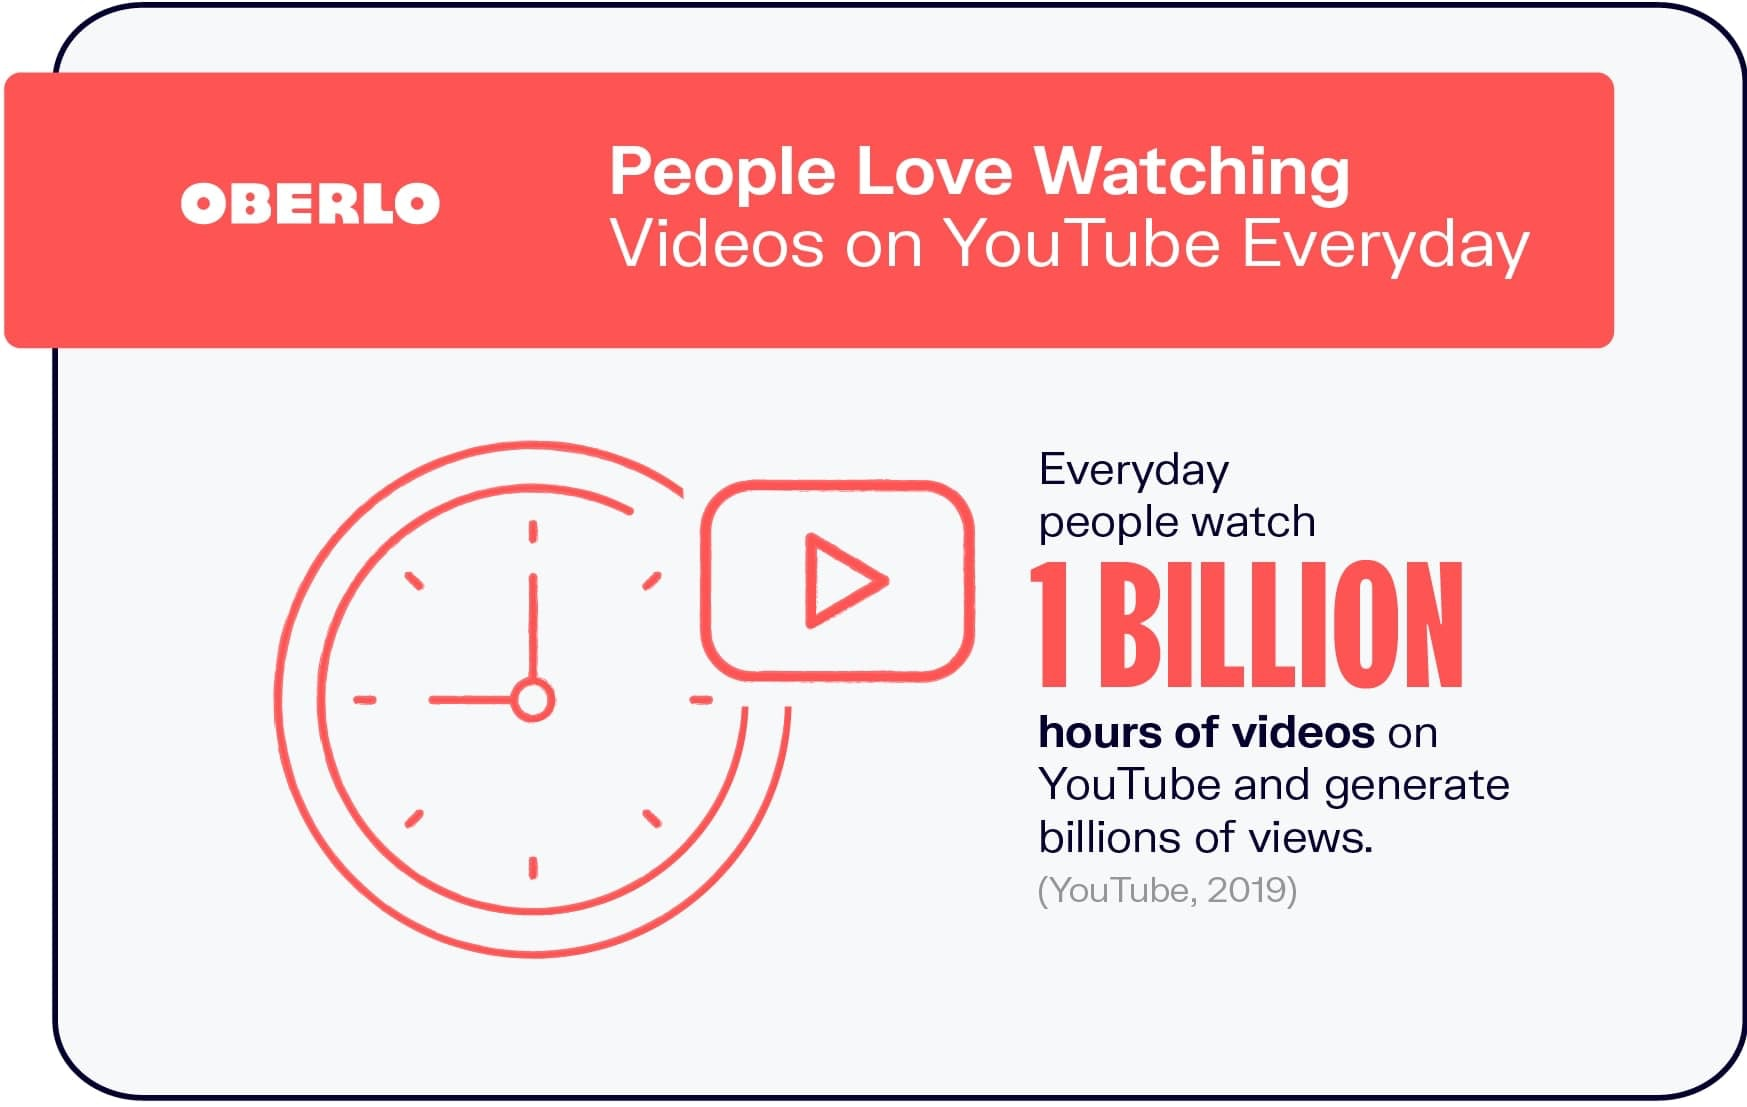 People Enjoy Watching Videos on YouTube Everyday